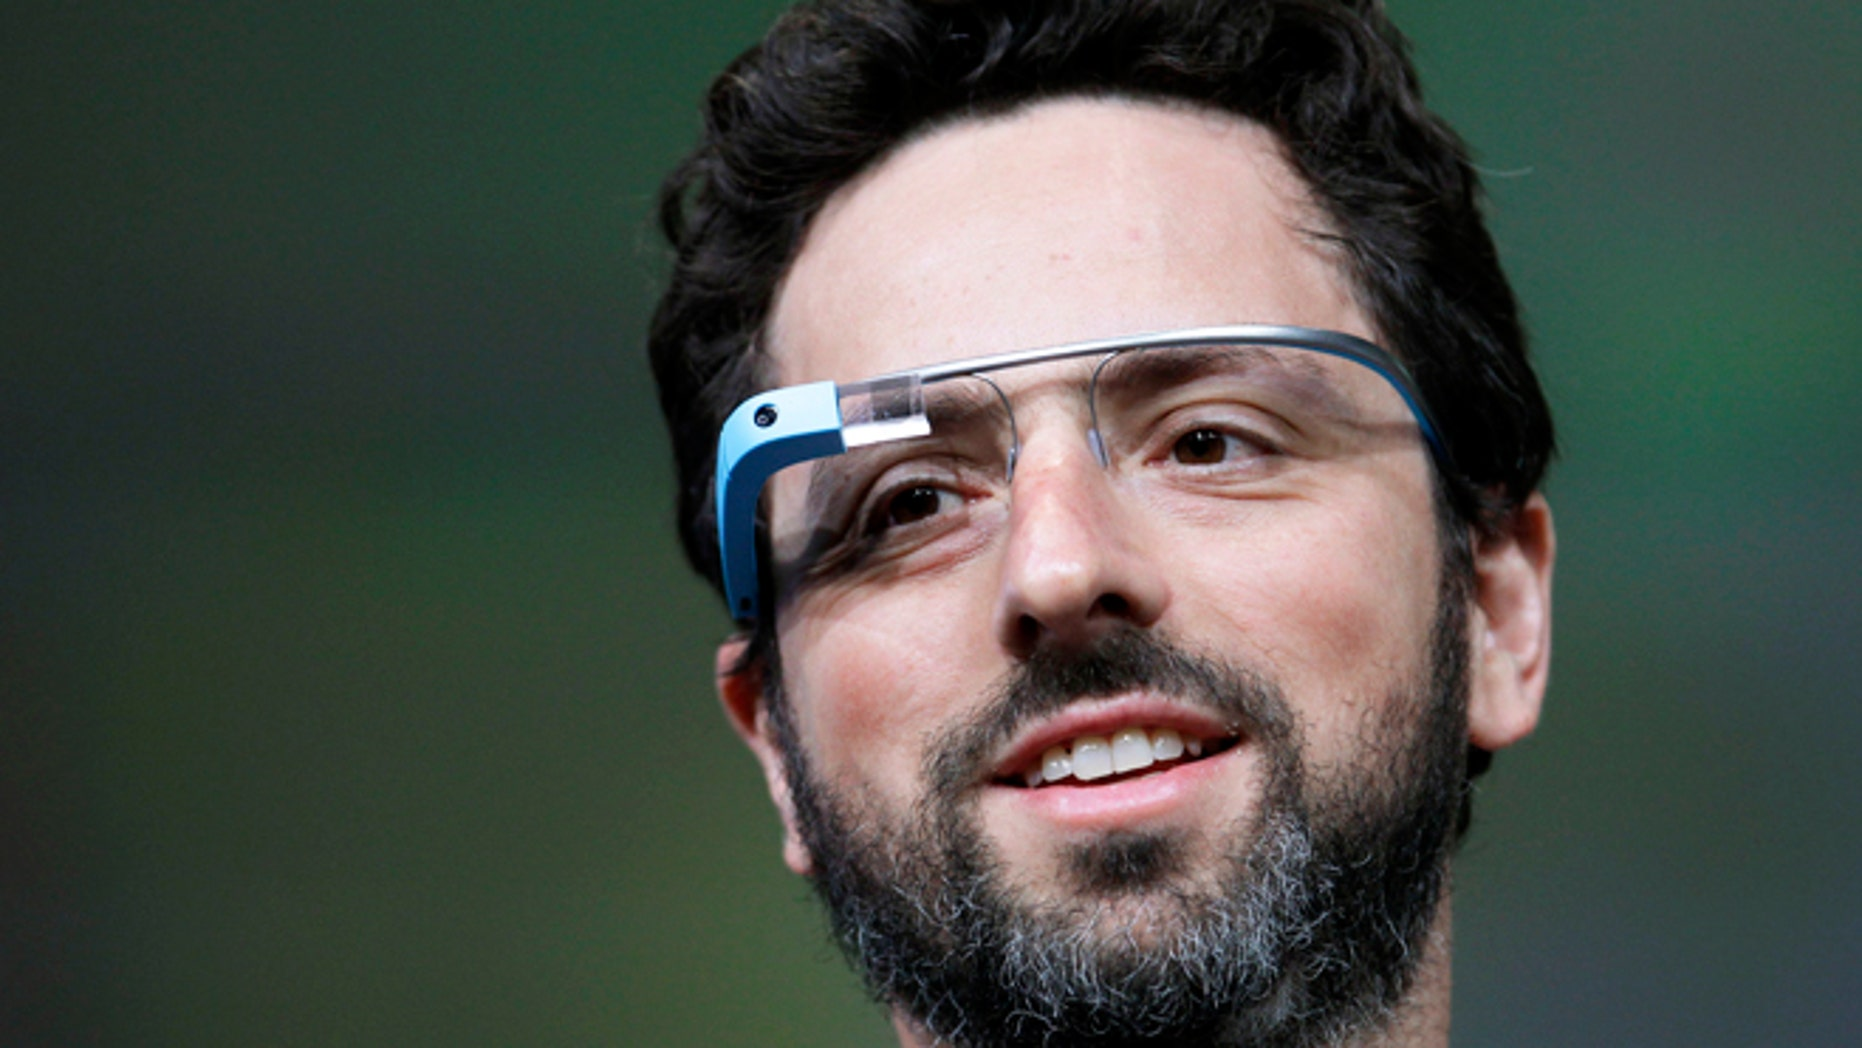 Google co-founder Sergey Brin demonstrating Google's new Glass -- wearable internet glasses -- at the Google I/O conference in San Francisco in 2012.